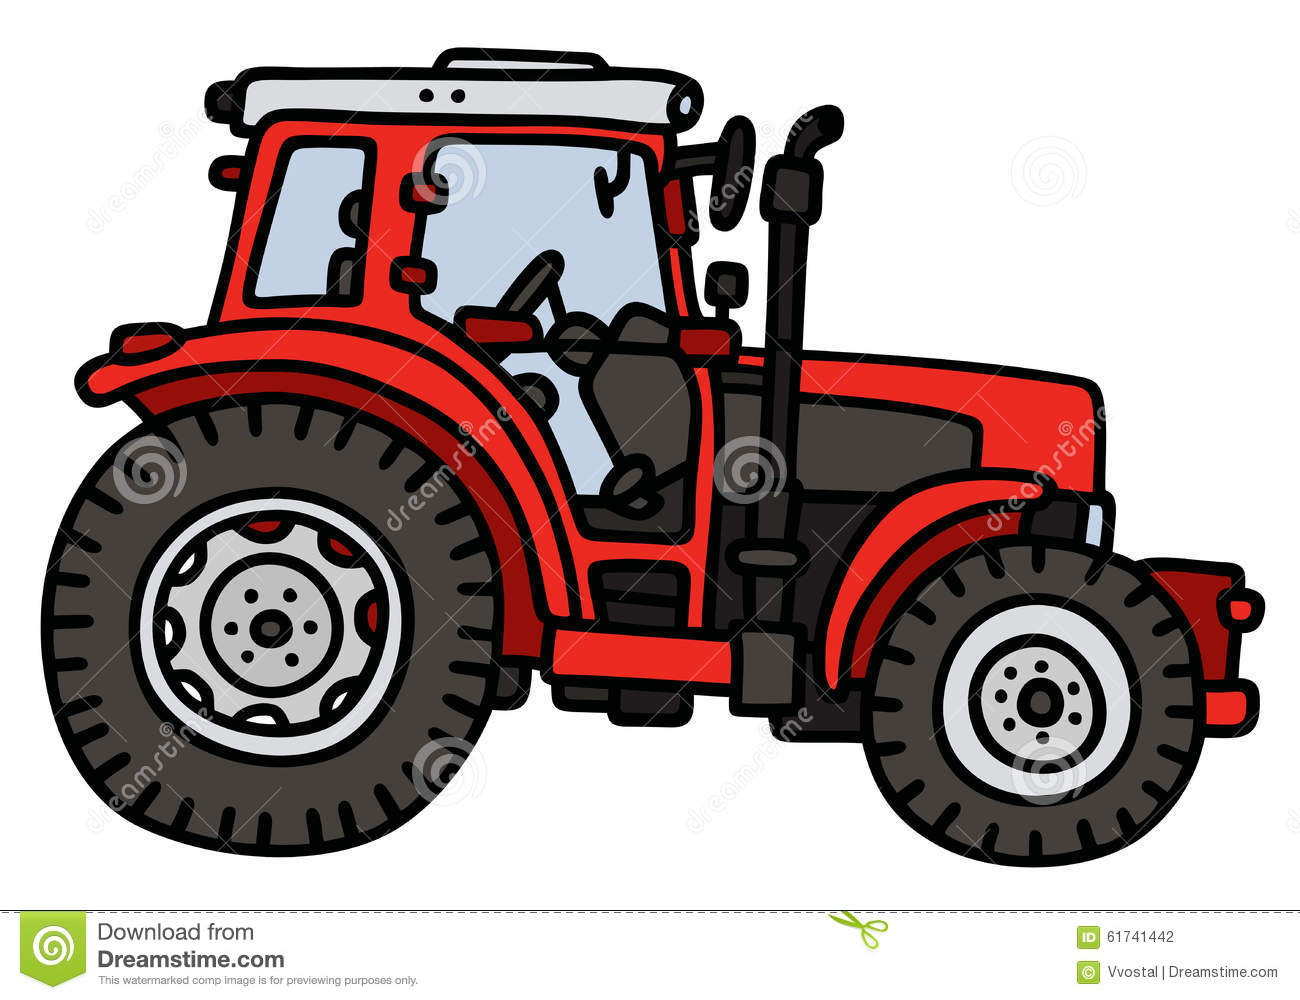 Hand drawing of a red tractor - not a real model.